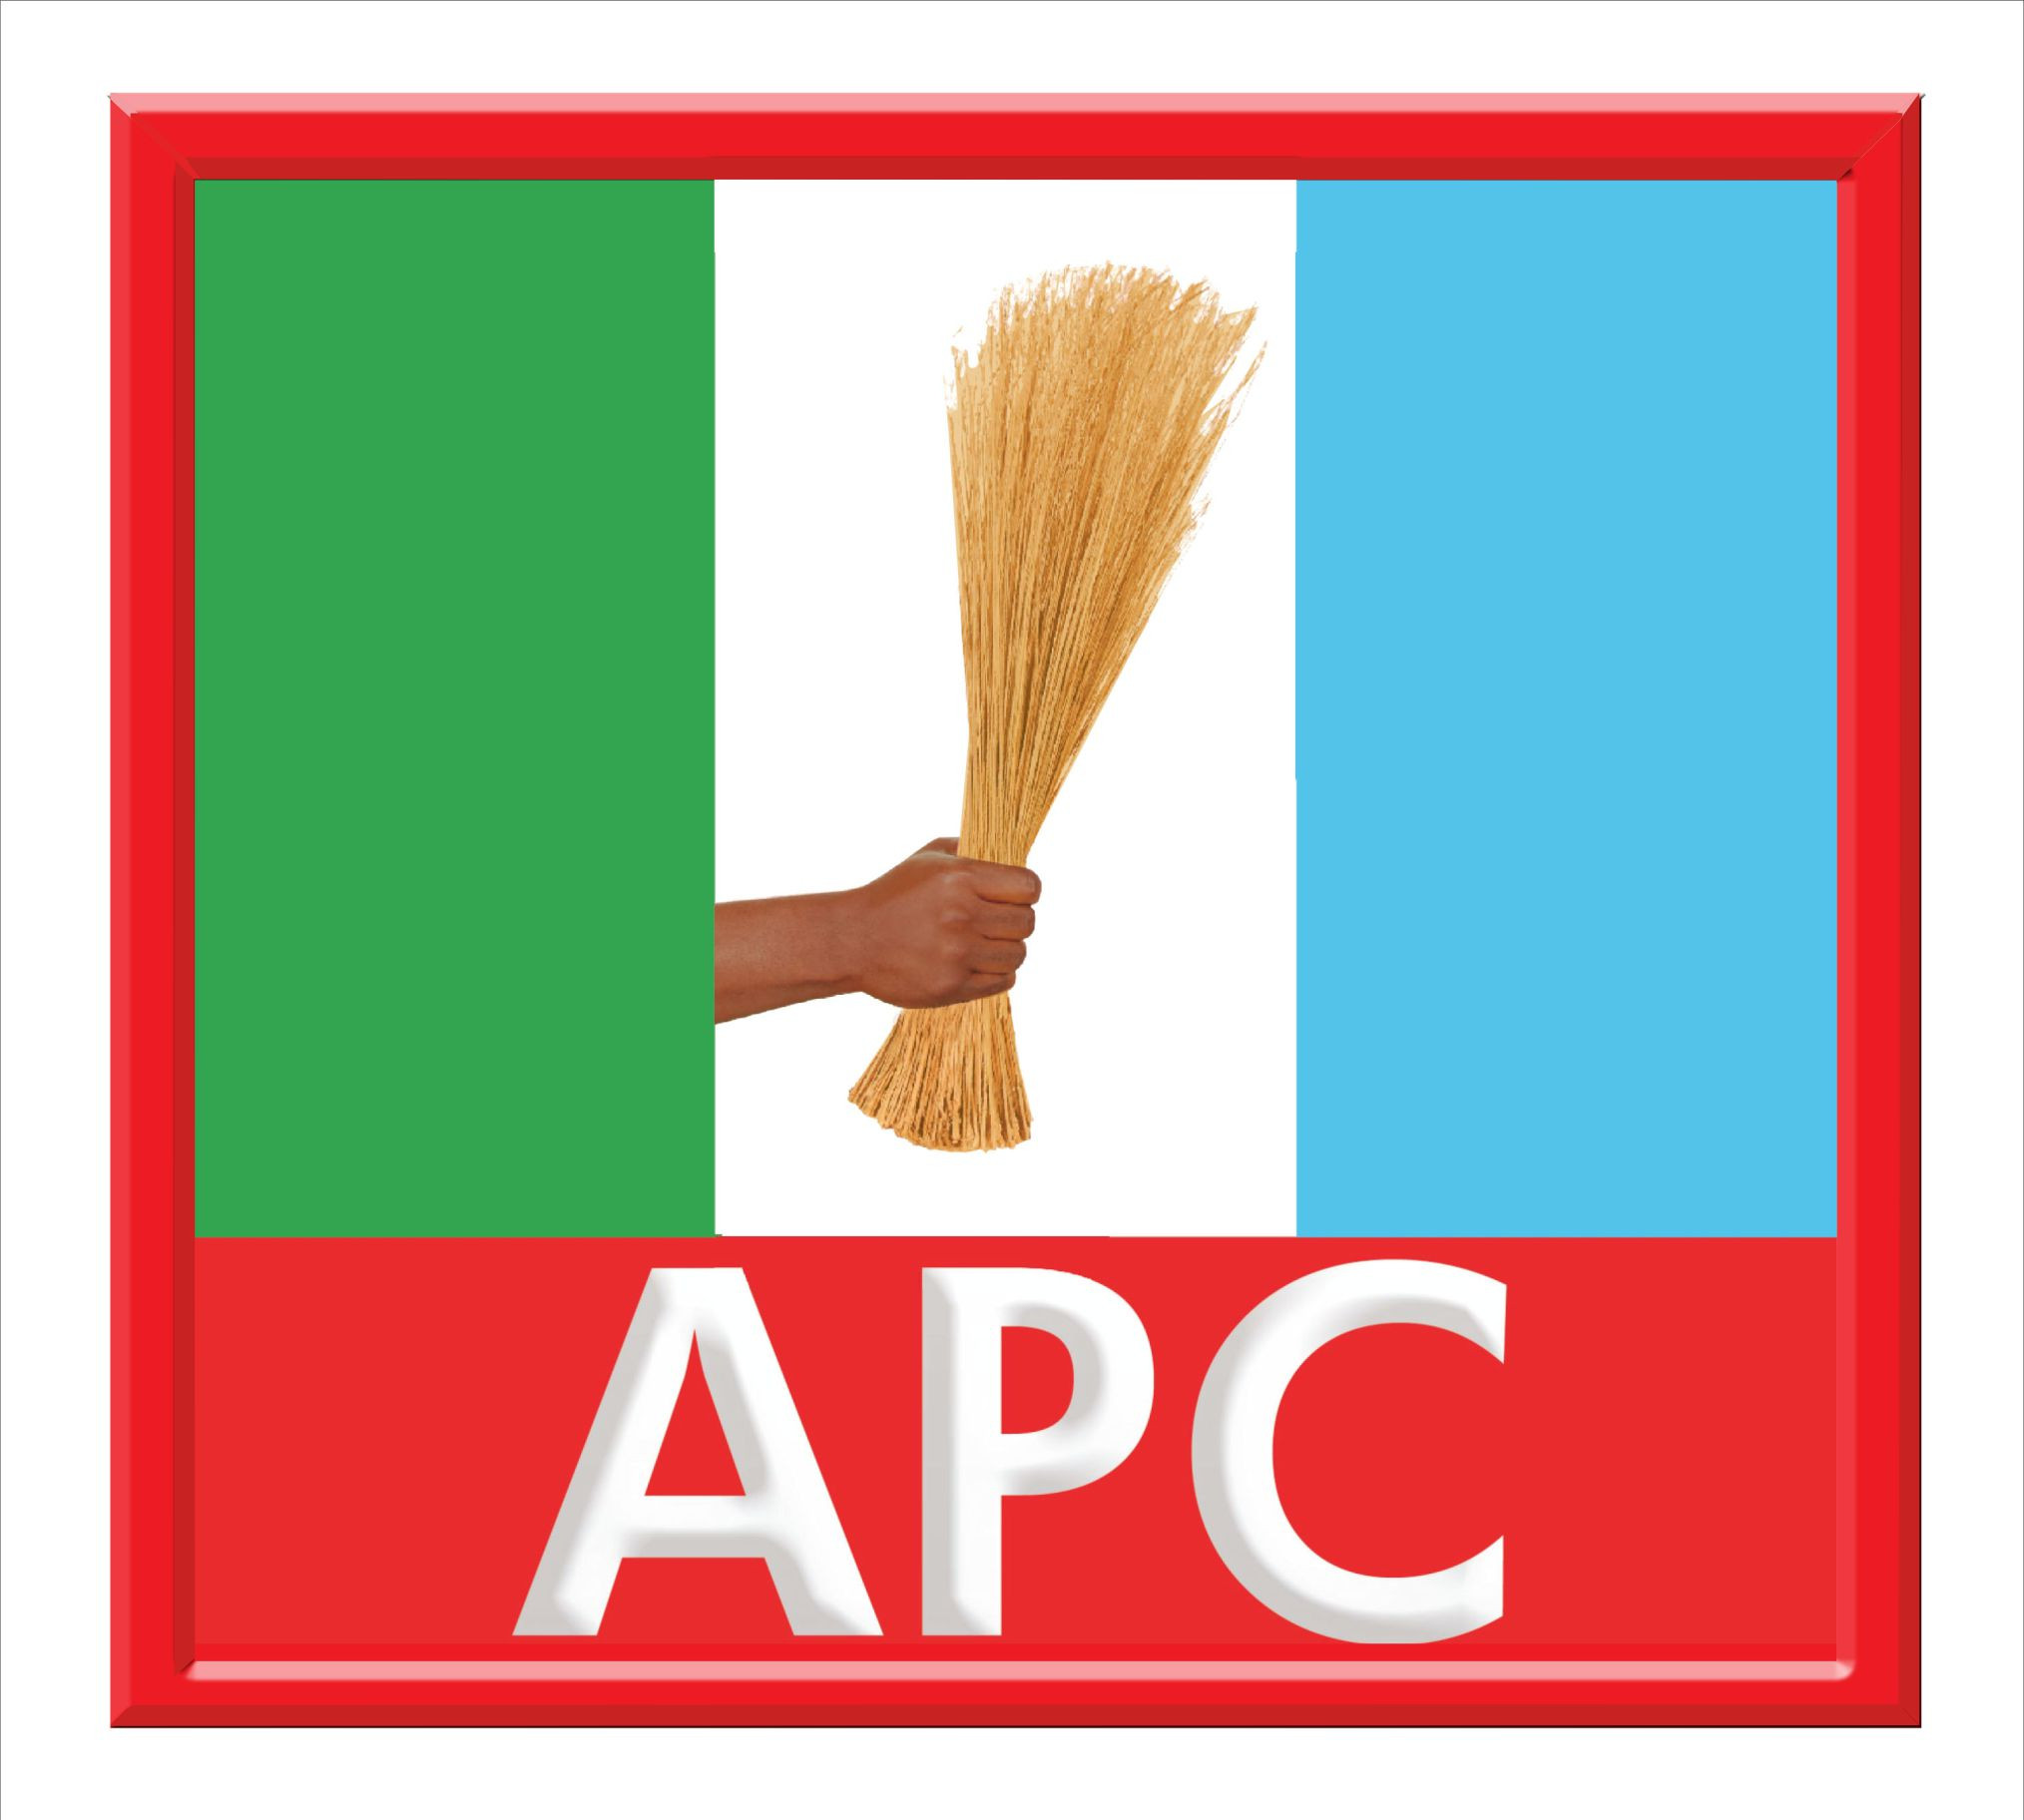 A northwest Governor is behind bandit attacks - APC